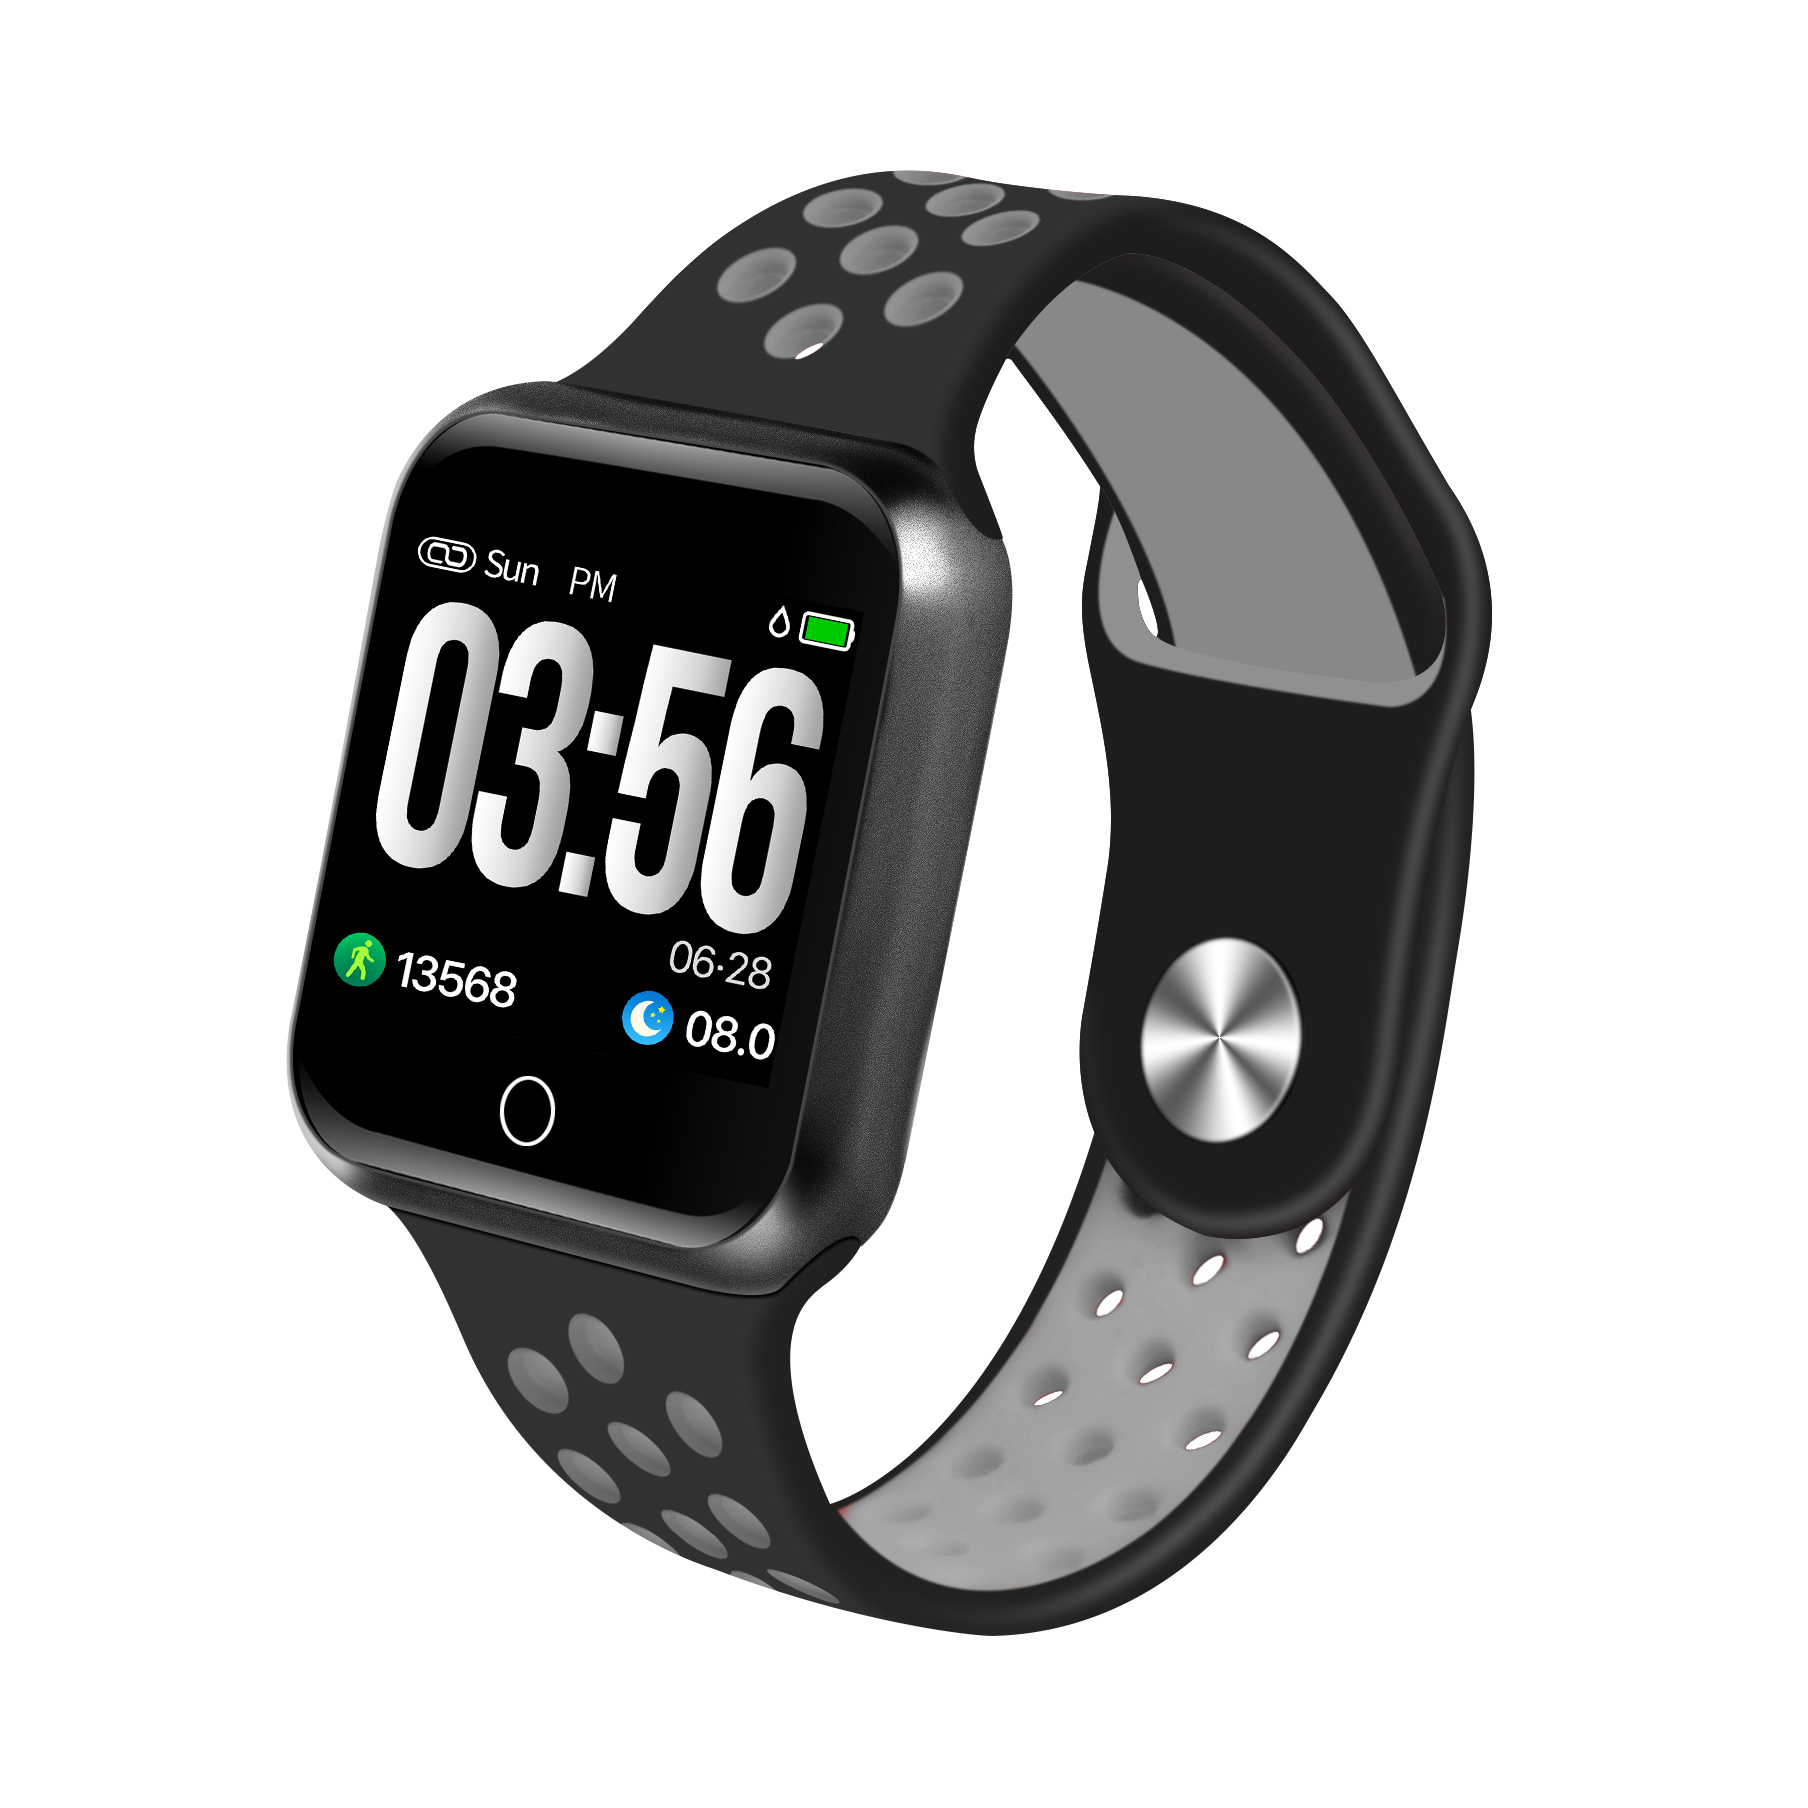 S226 Smartwatch Women Men Sport Modes Waterproof Heart Rate Monitor Blood Pressure For iPhone Android PK iwo 8 Smart watch фото